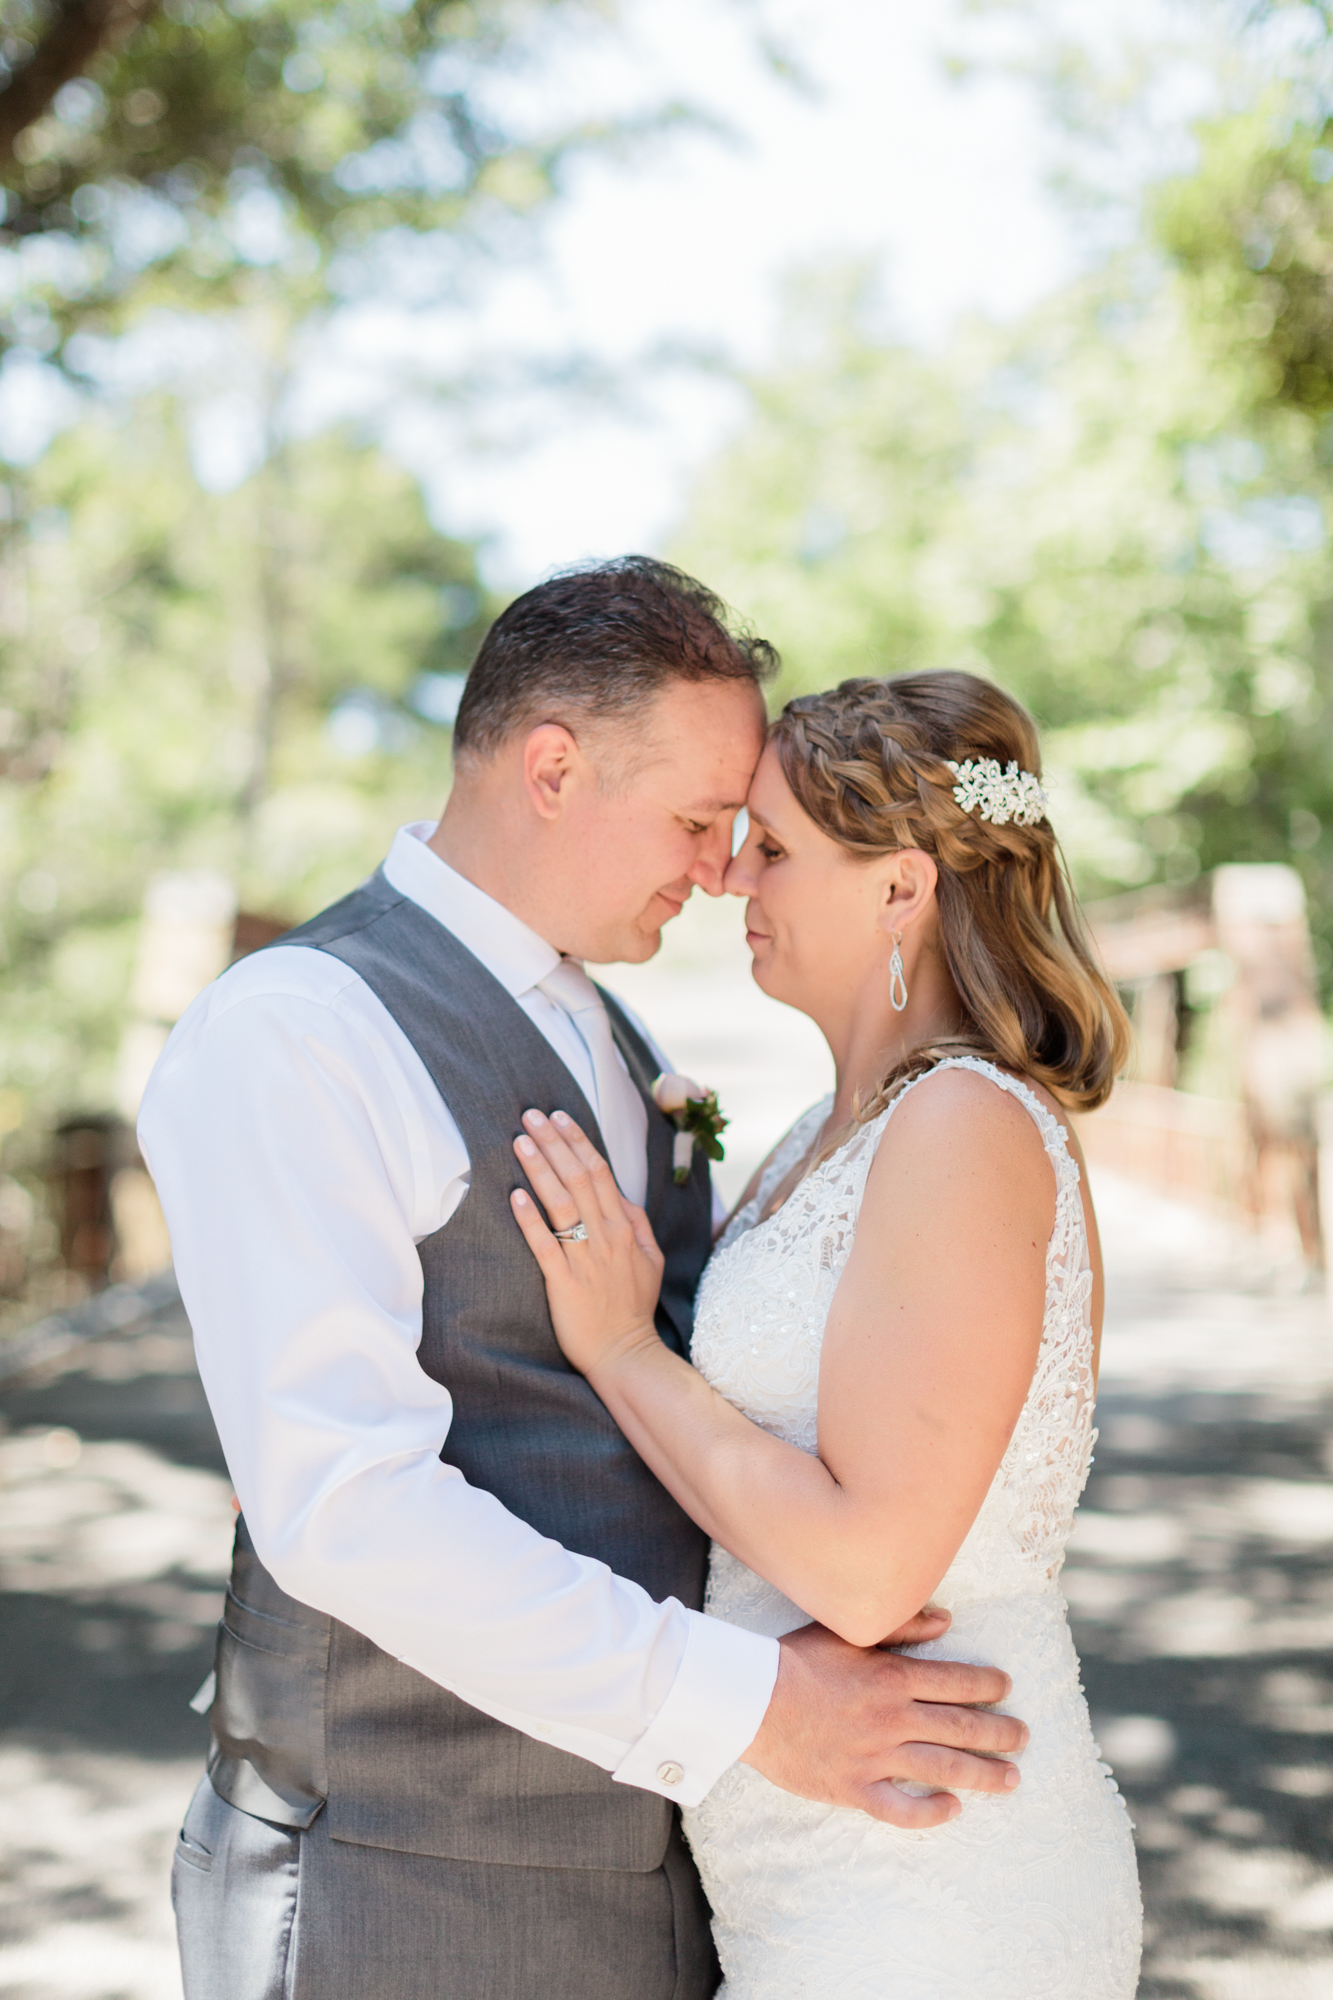 www.santabarbarawedding.com | Kaitie Brainerd Photo | Rancho Dos Pueblos | Bride and Groom